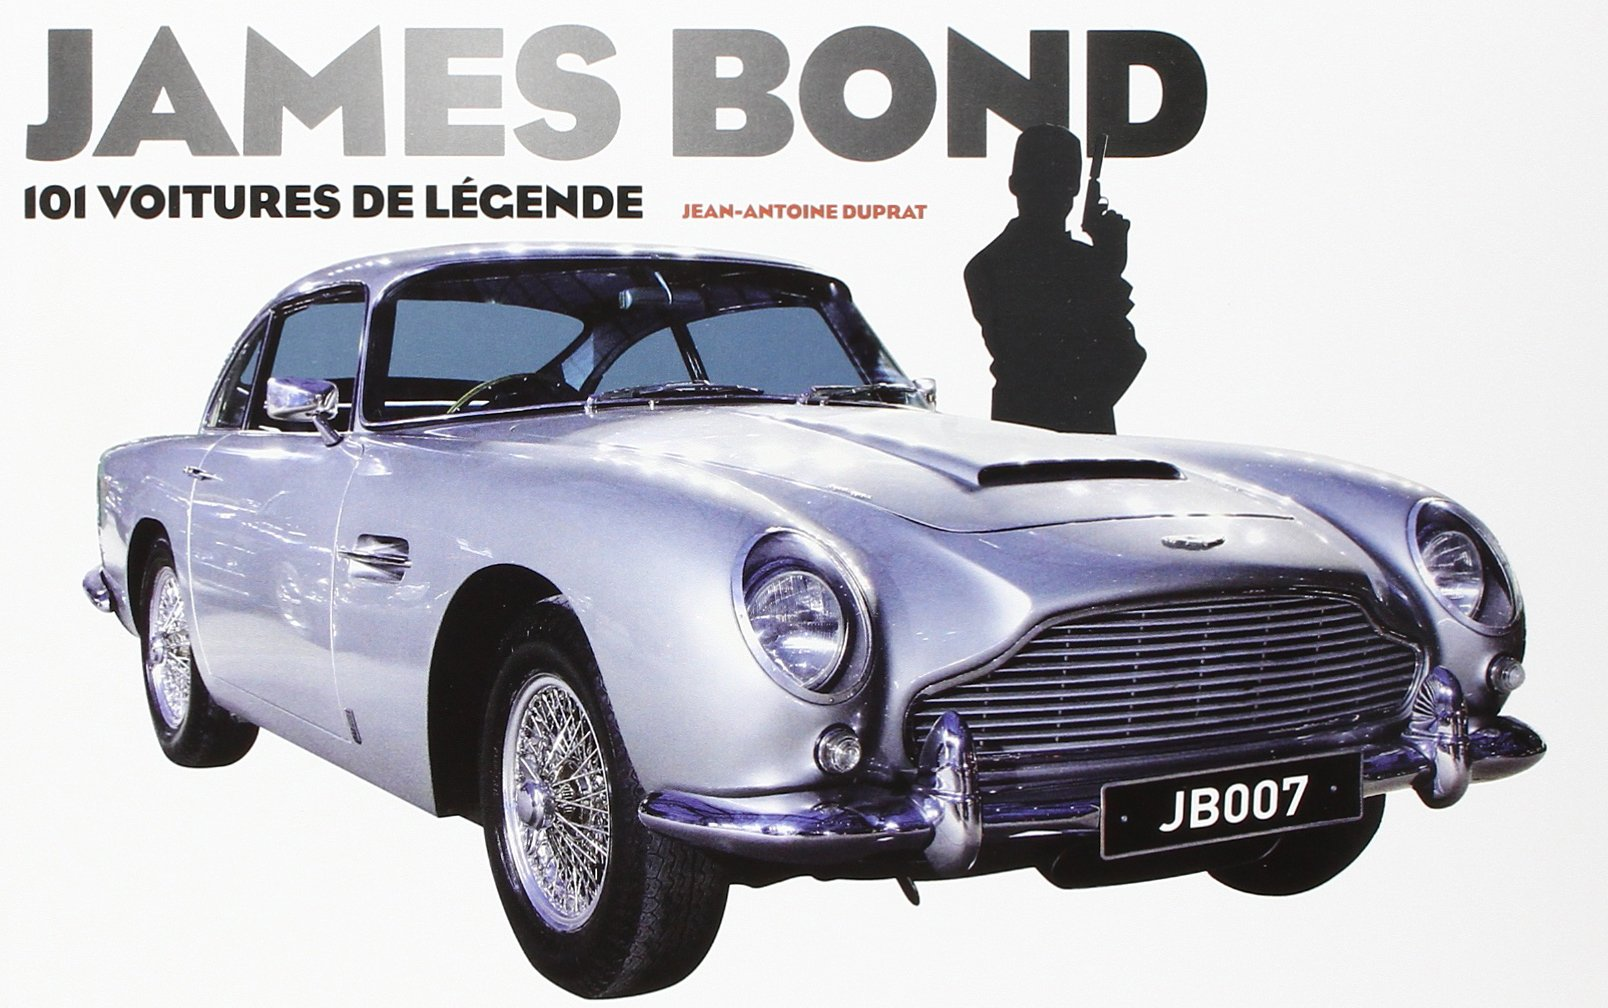 Amazon.fr - James Bond - 101 voitures de légende - Jean-antoine Duprat -  Livres